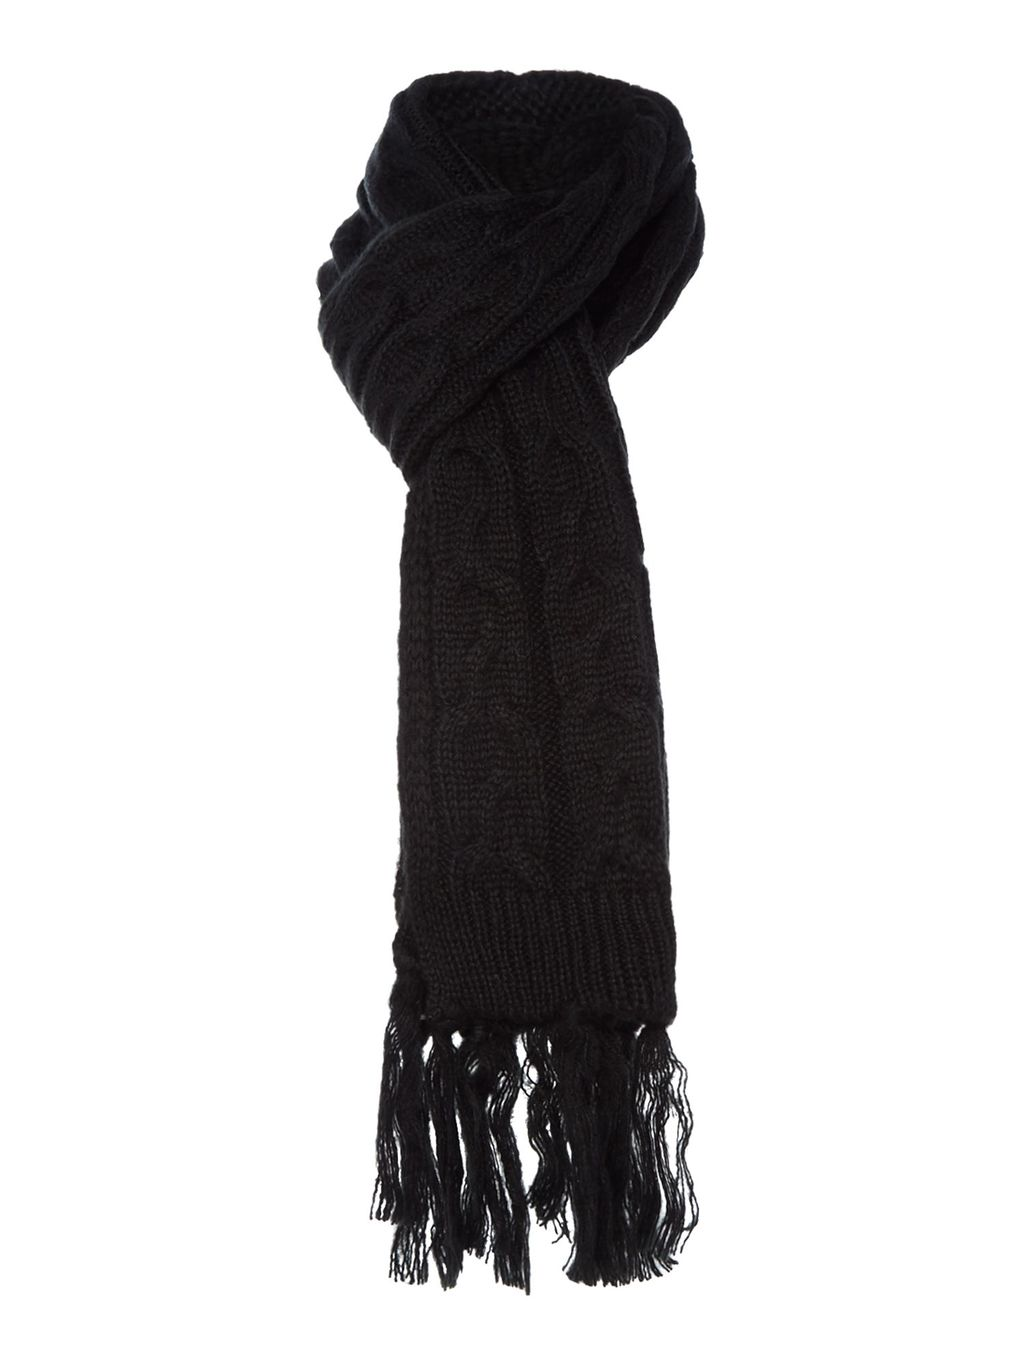 Black Cable Scarf, Black - predominant colour: black; occasions: casual, creative work; style: regular; size: standard; material: knits; embellishment: fringing; pattern: plain; season: a/w 2015; wardrobe: basic